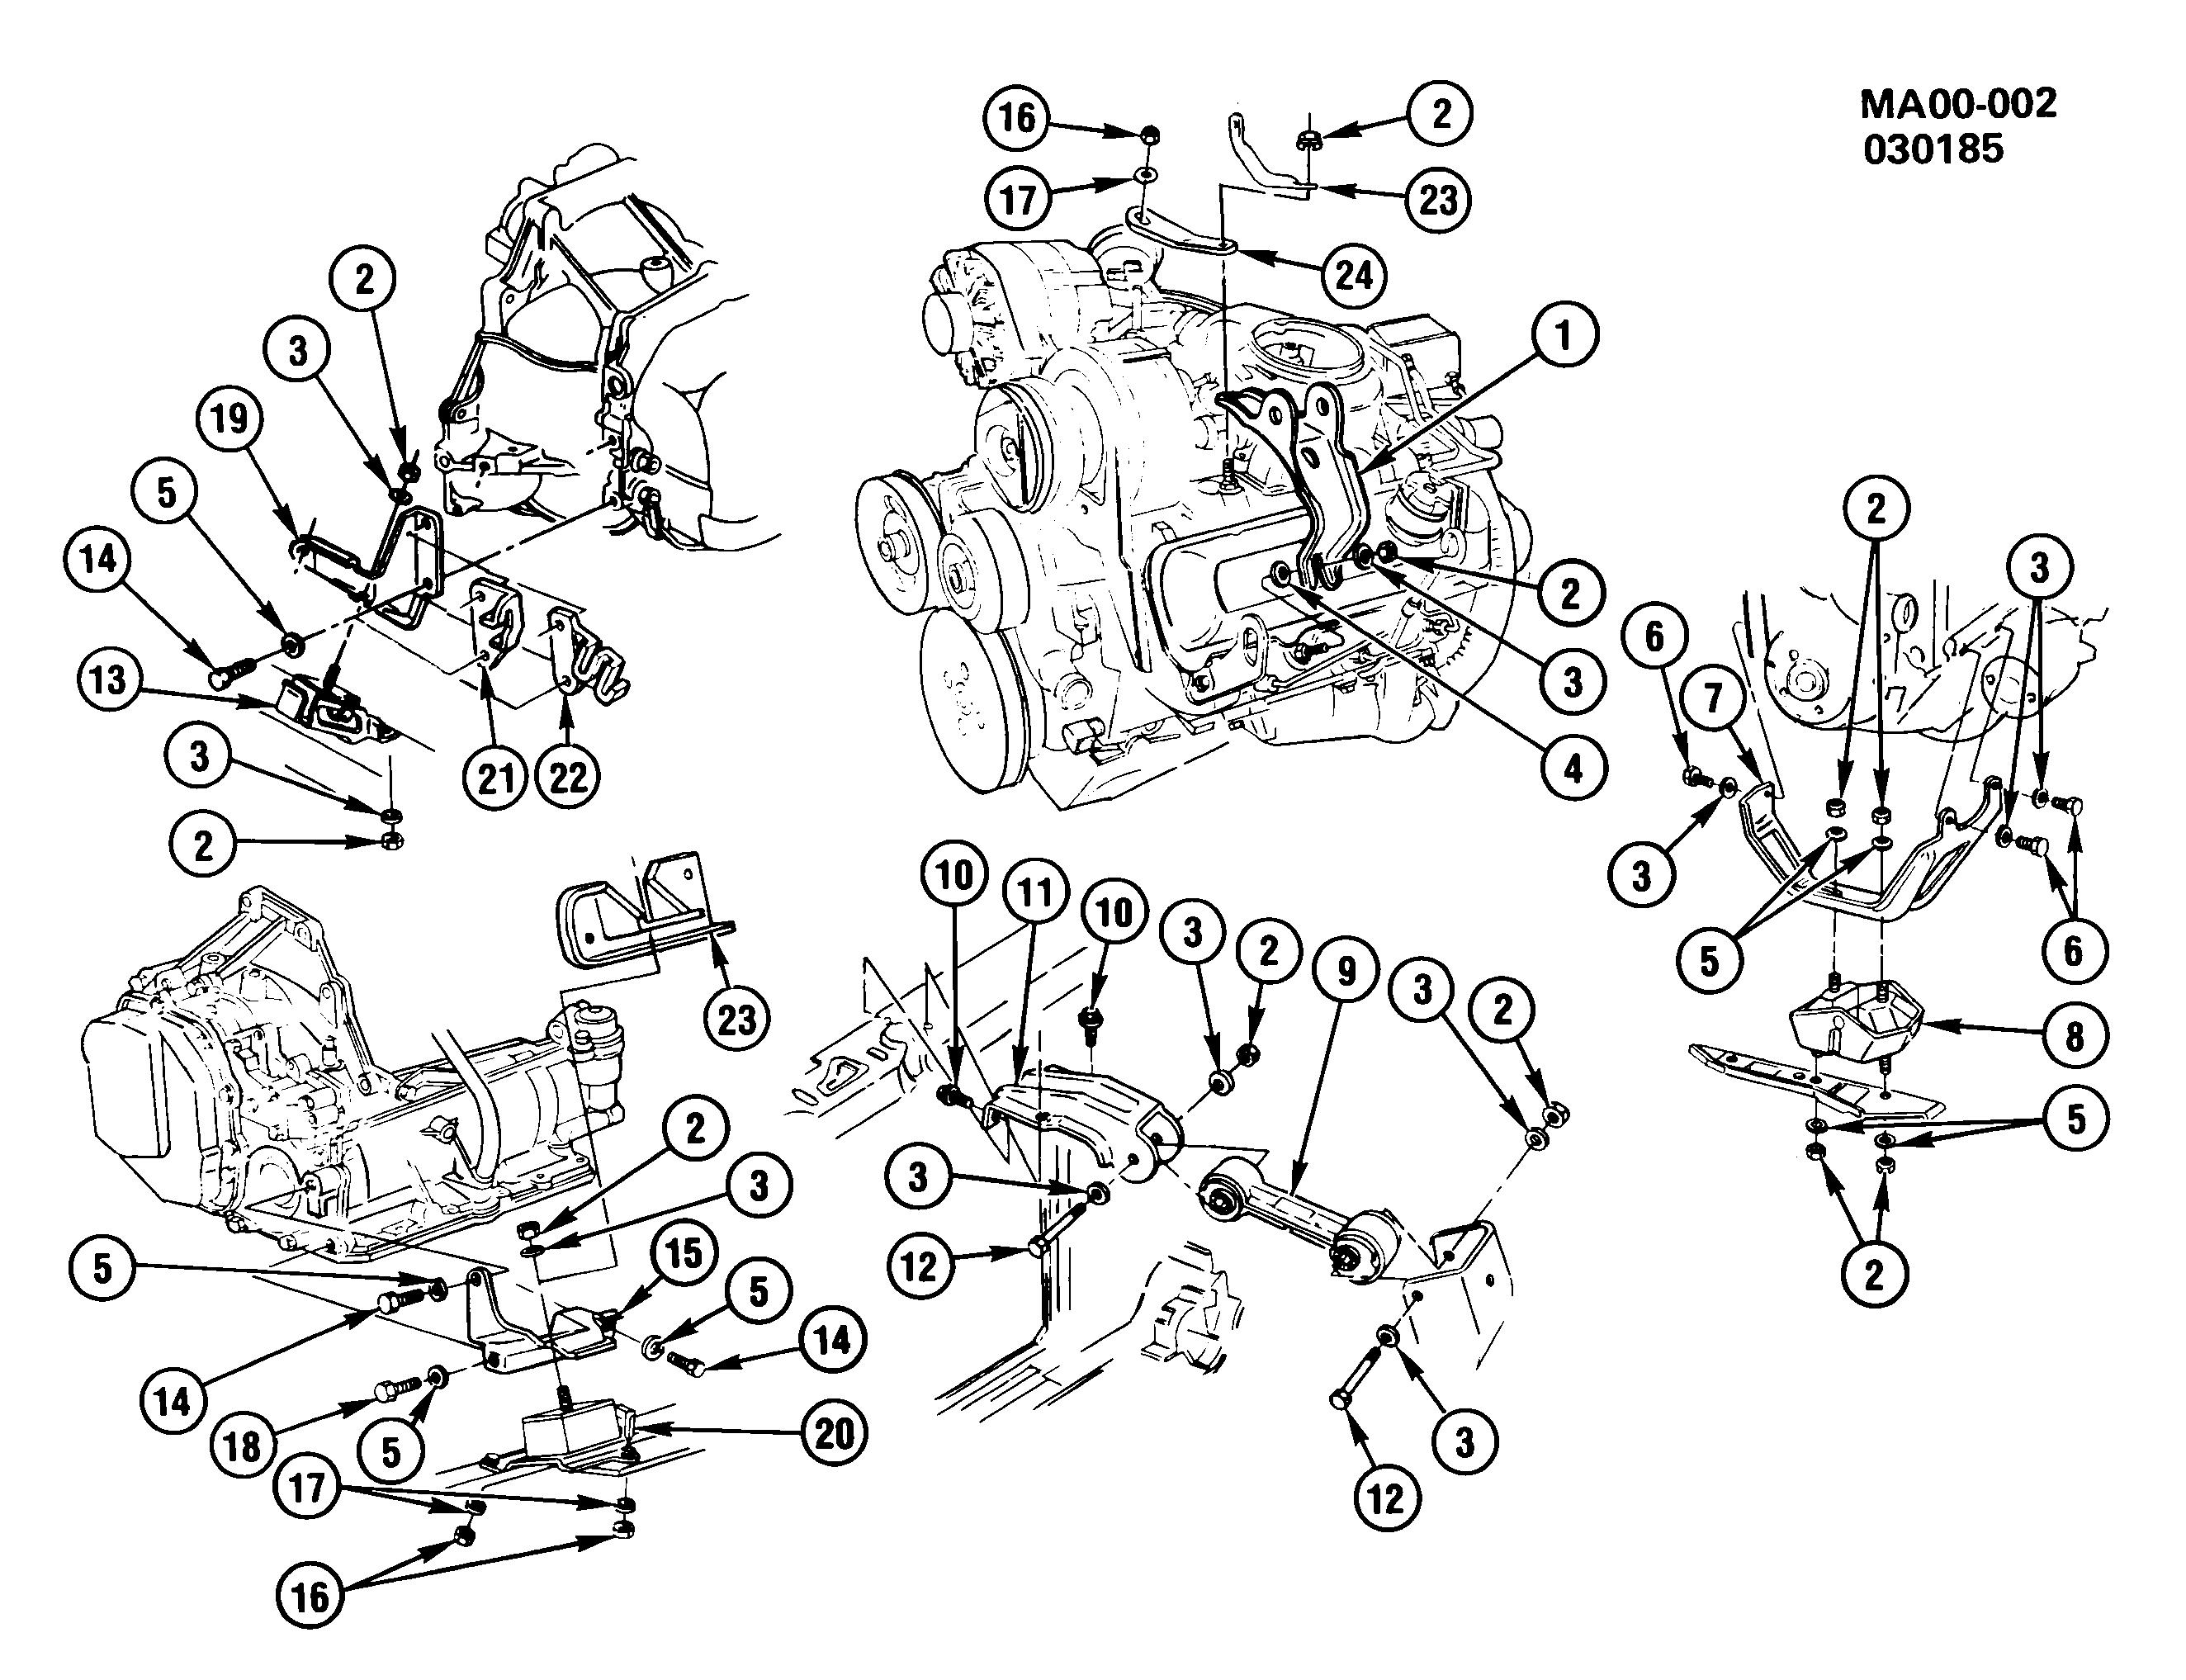 1982-1985 A ENGINE & TRANSMISSION MOUNTING-V6 (LT7/4.3T)